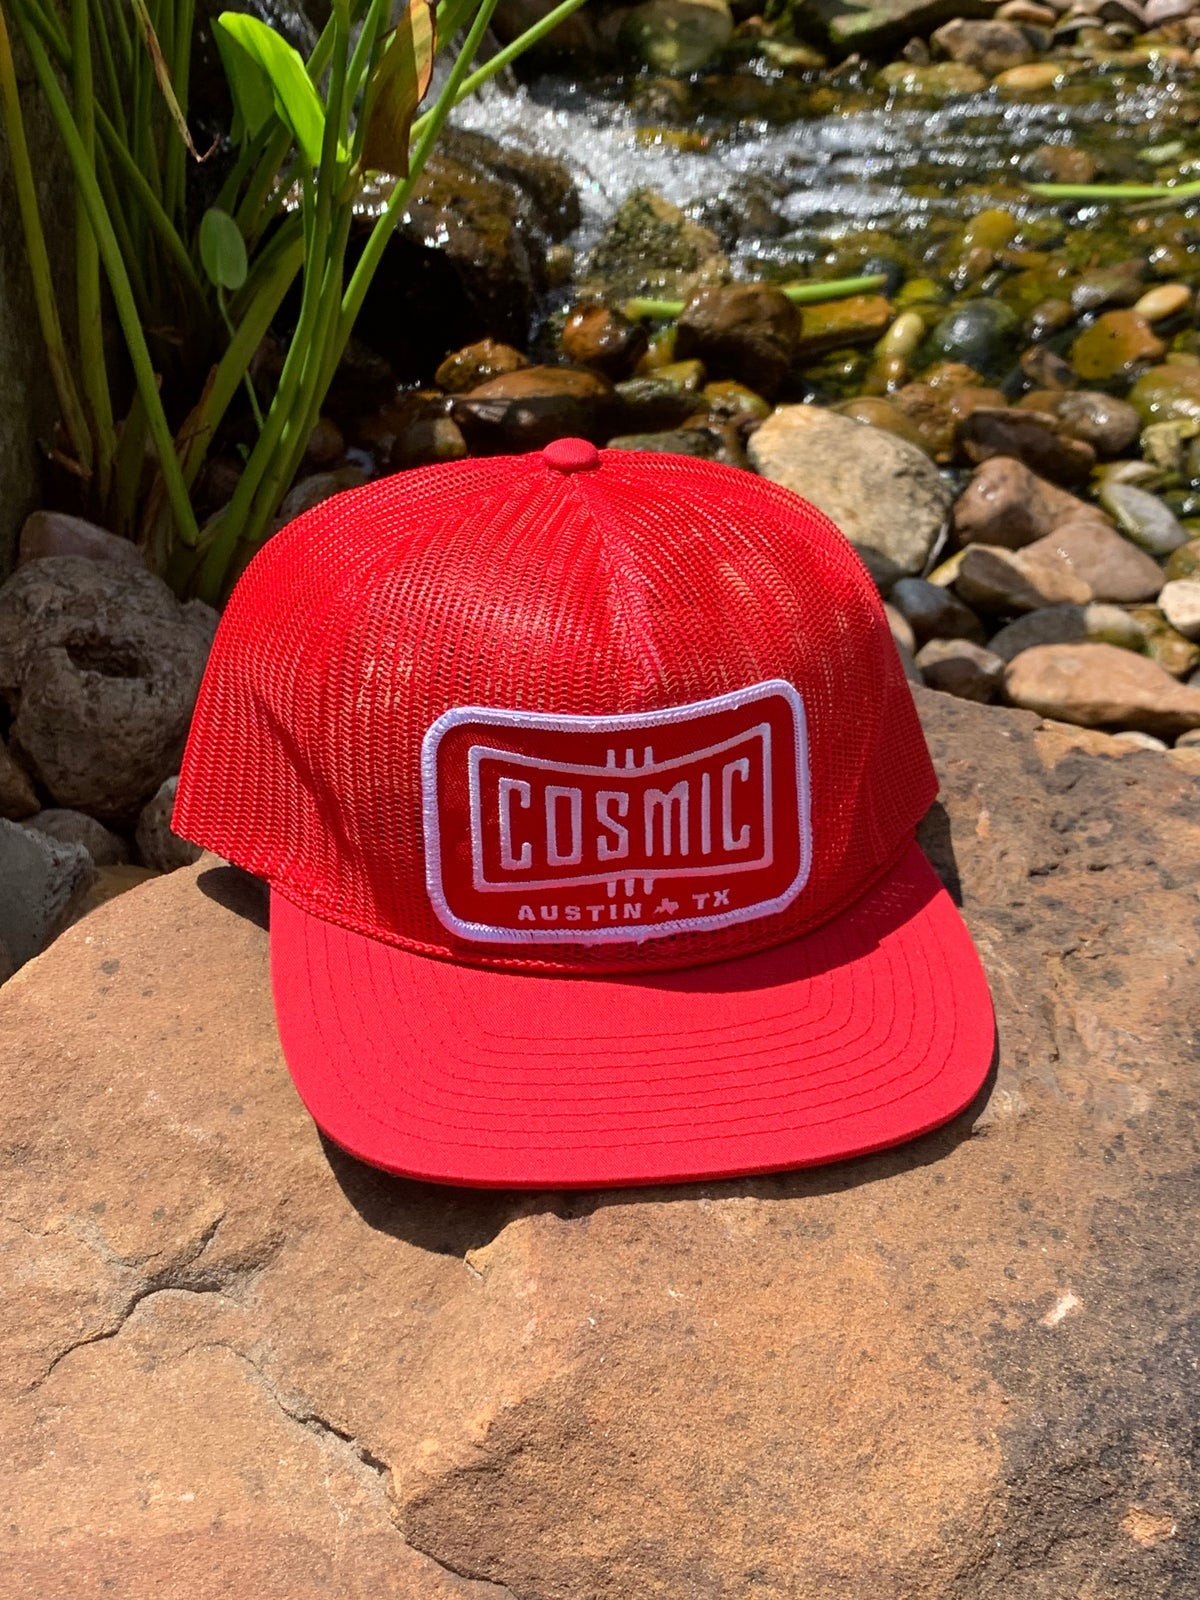 Cosmic Red on Red Patch Snapback